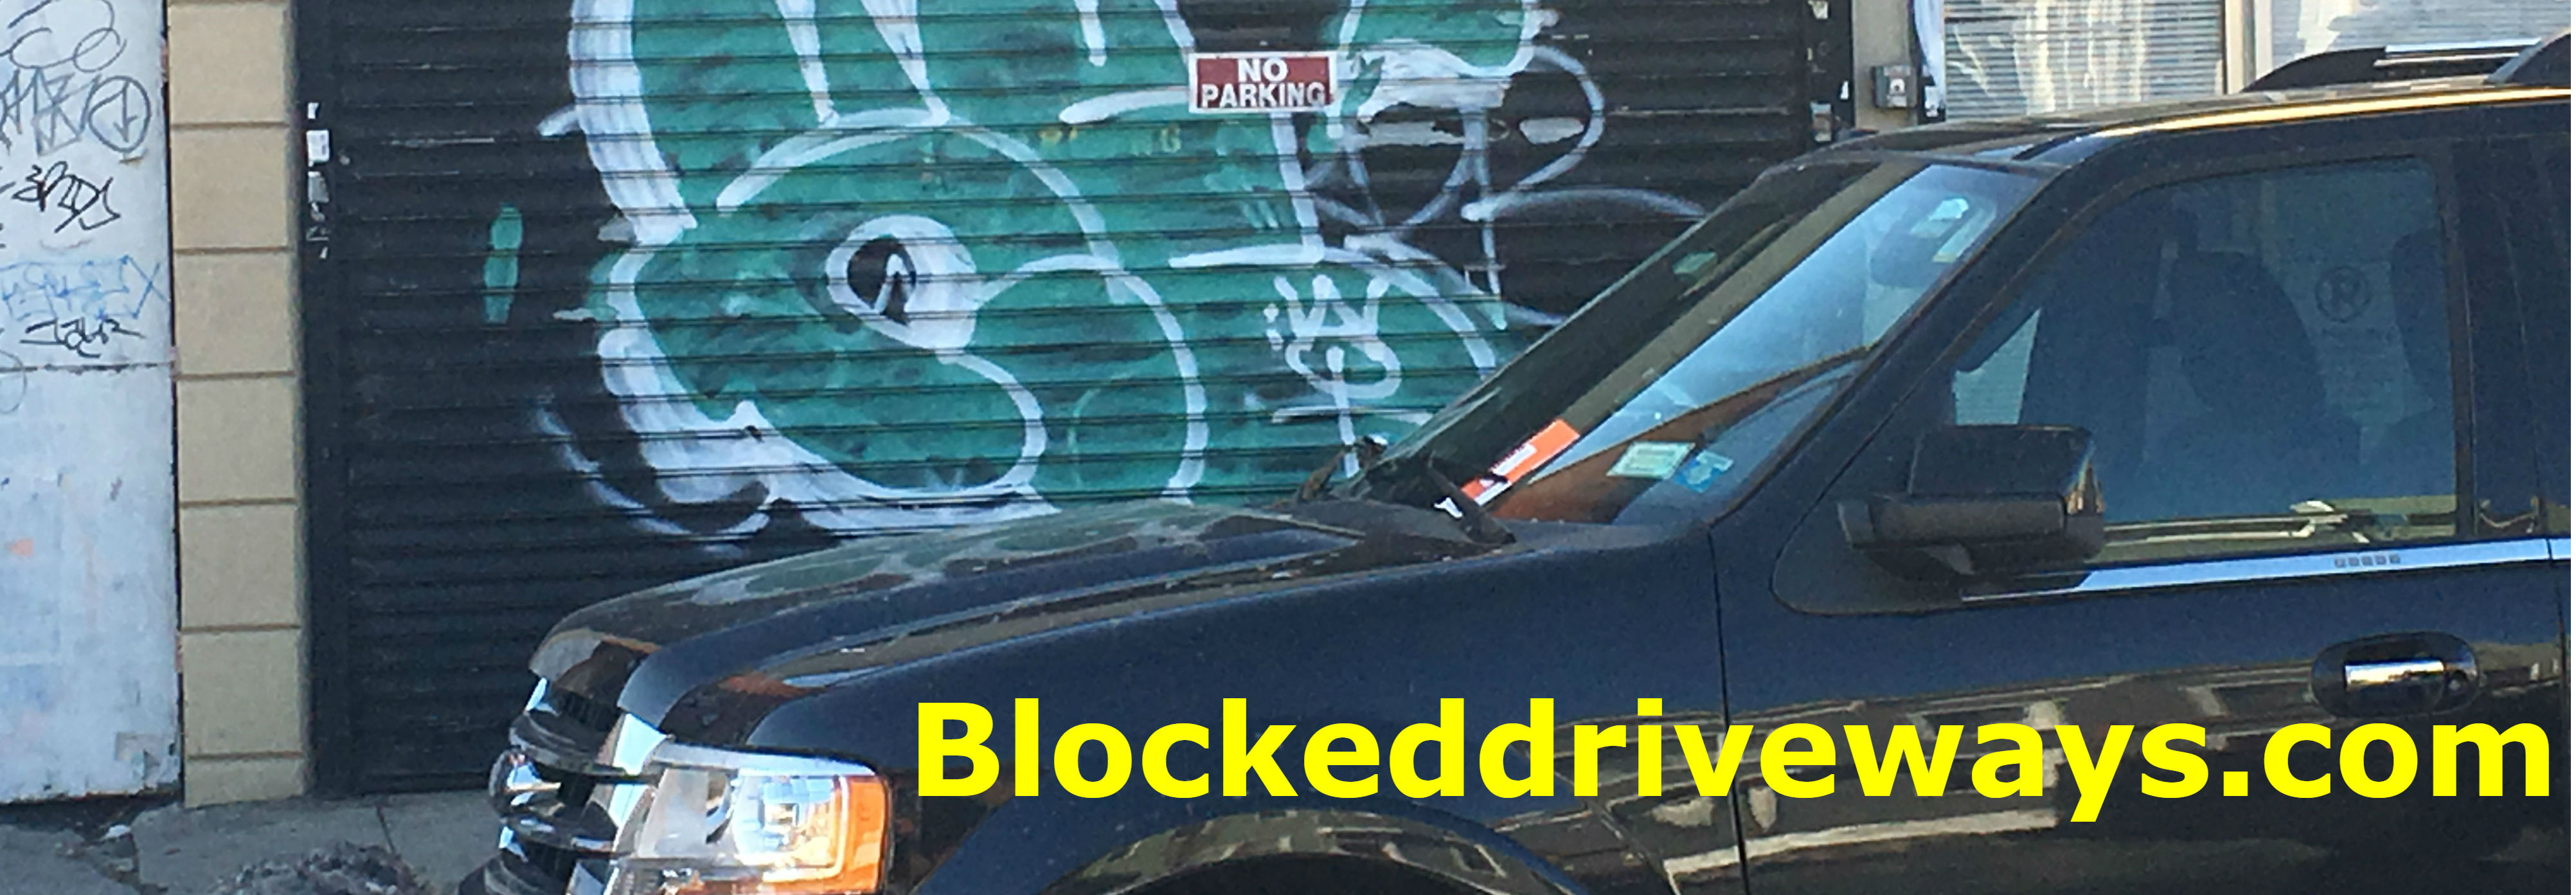 24 hour Brooklyn Blocked driveway Towing service